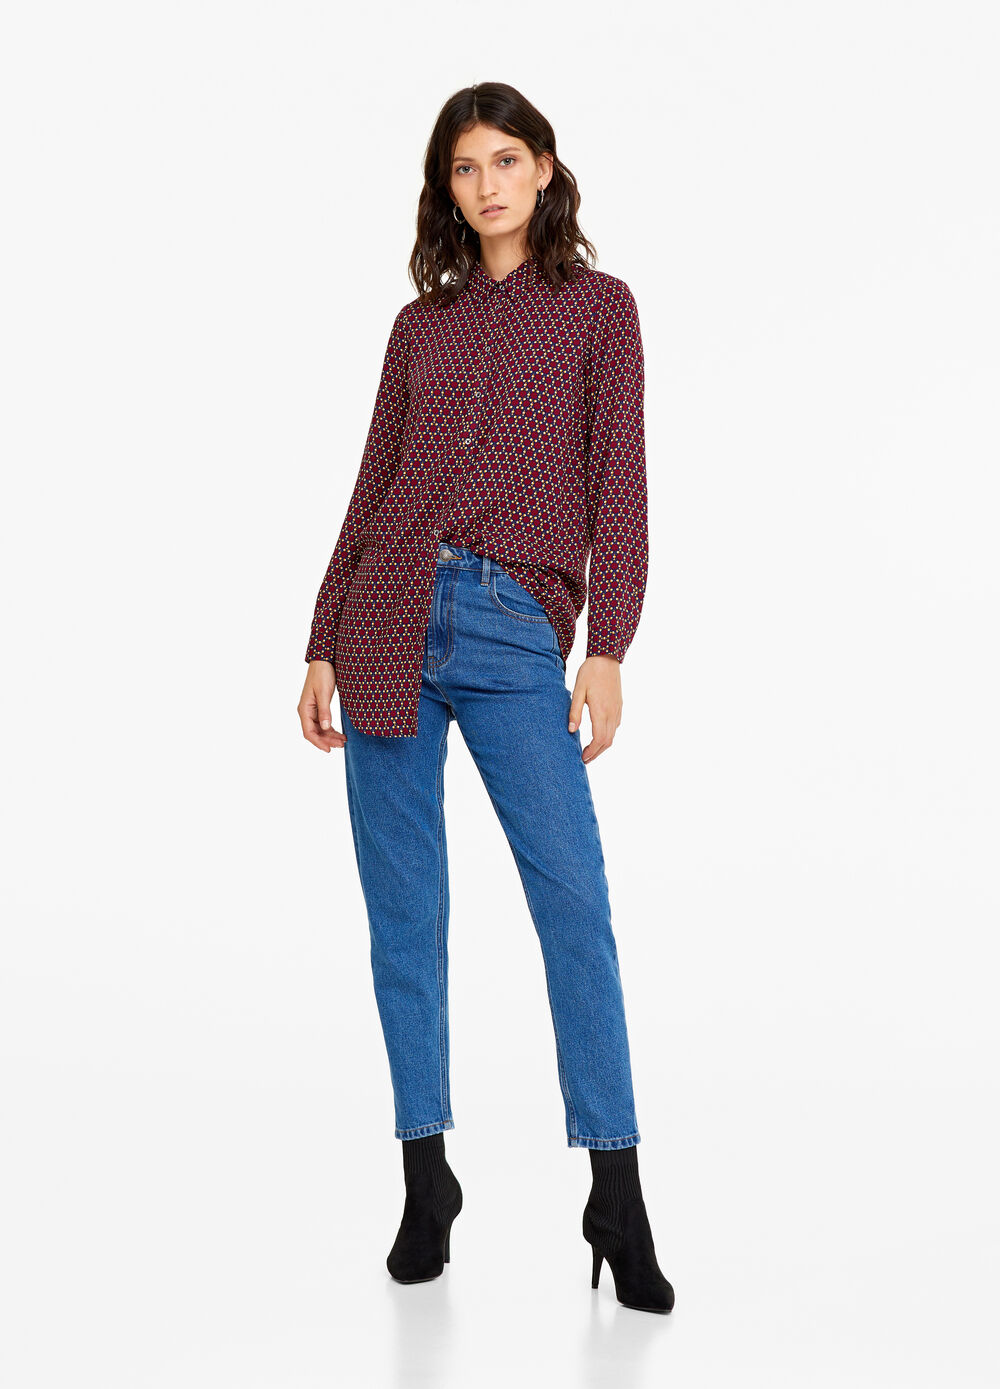 Long shirt with pattern